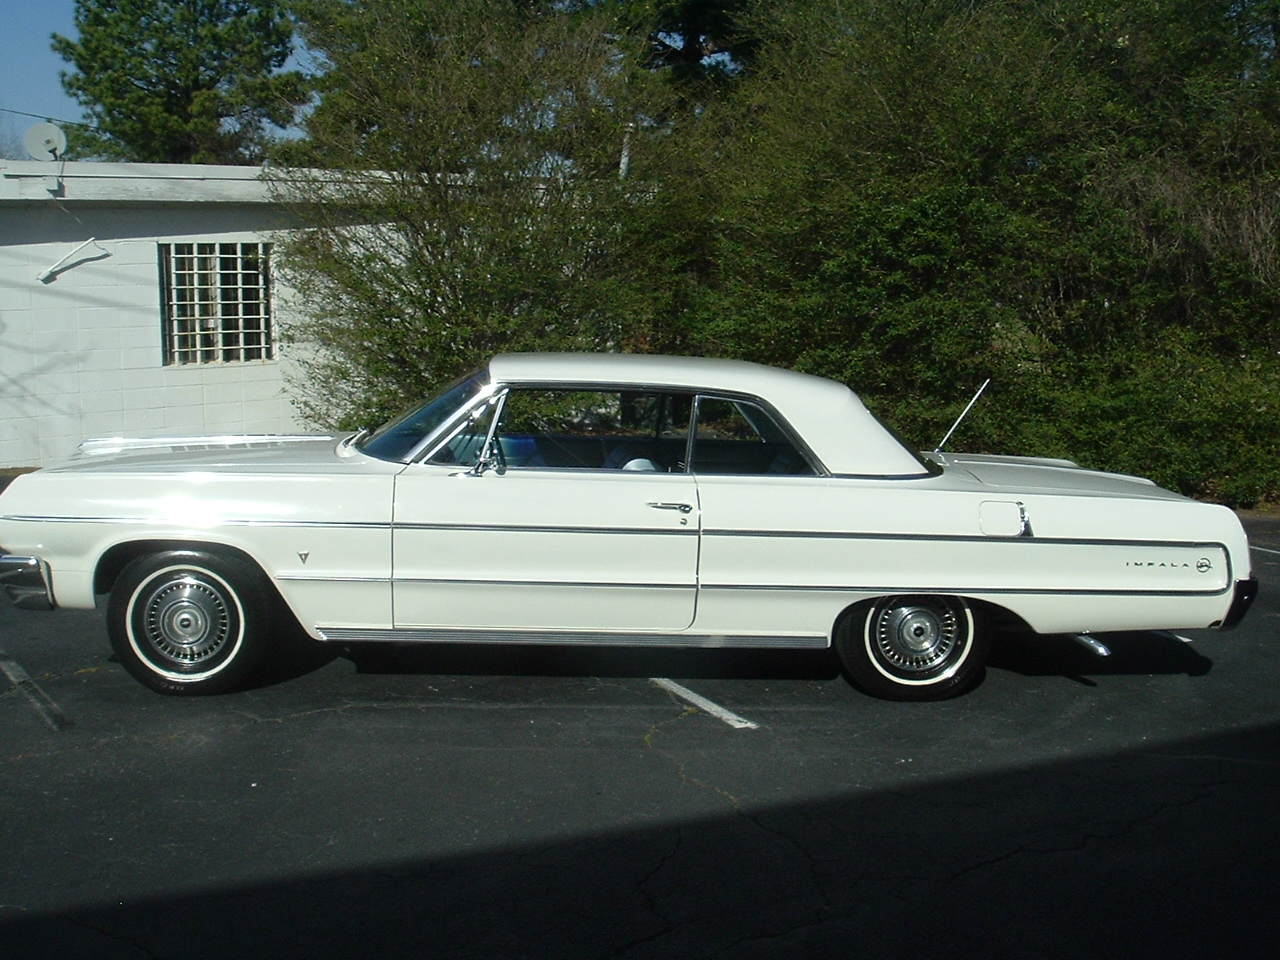 1964 Impala Two Door Hardtop White (2)